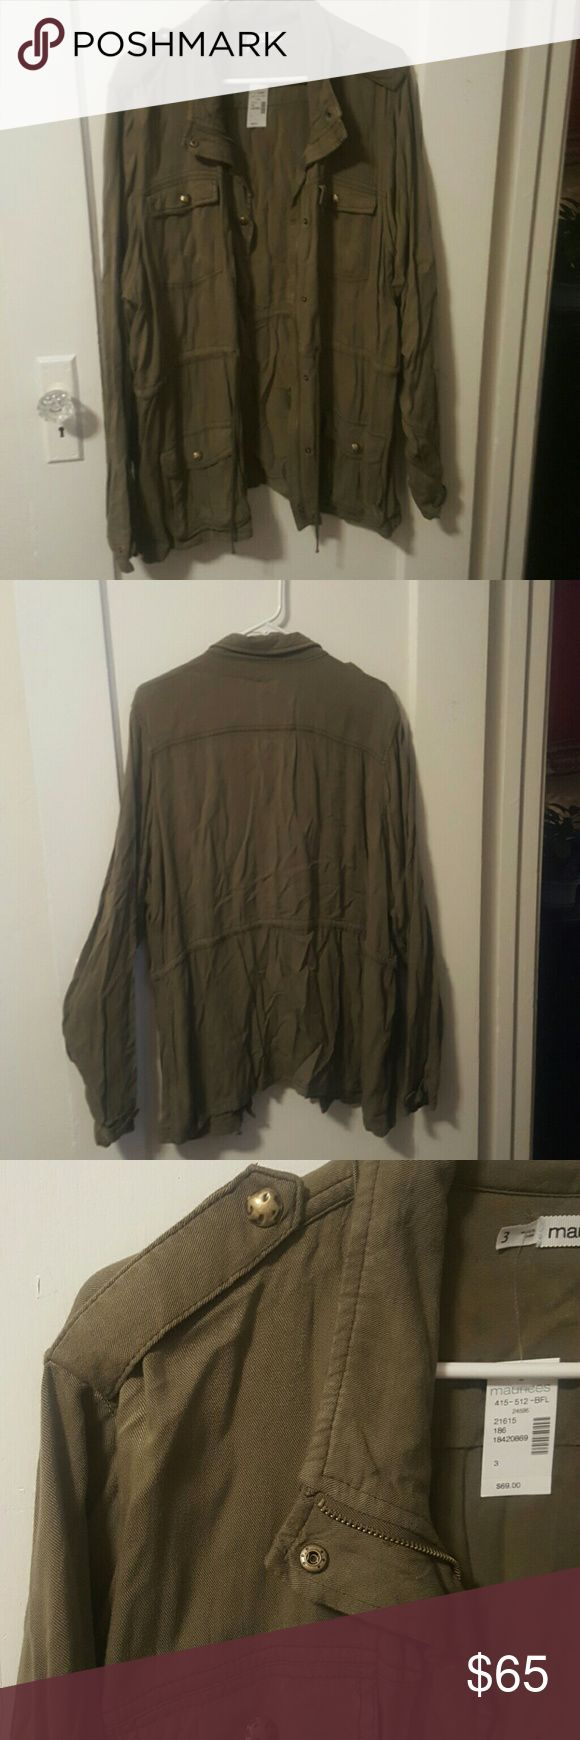 Army green jacket Army green jacket with gold buttons. This jacket is light weight and a perfect add to your fav Jean outfit Maurices Tops Sweatshirts & Hoodies